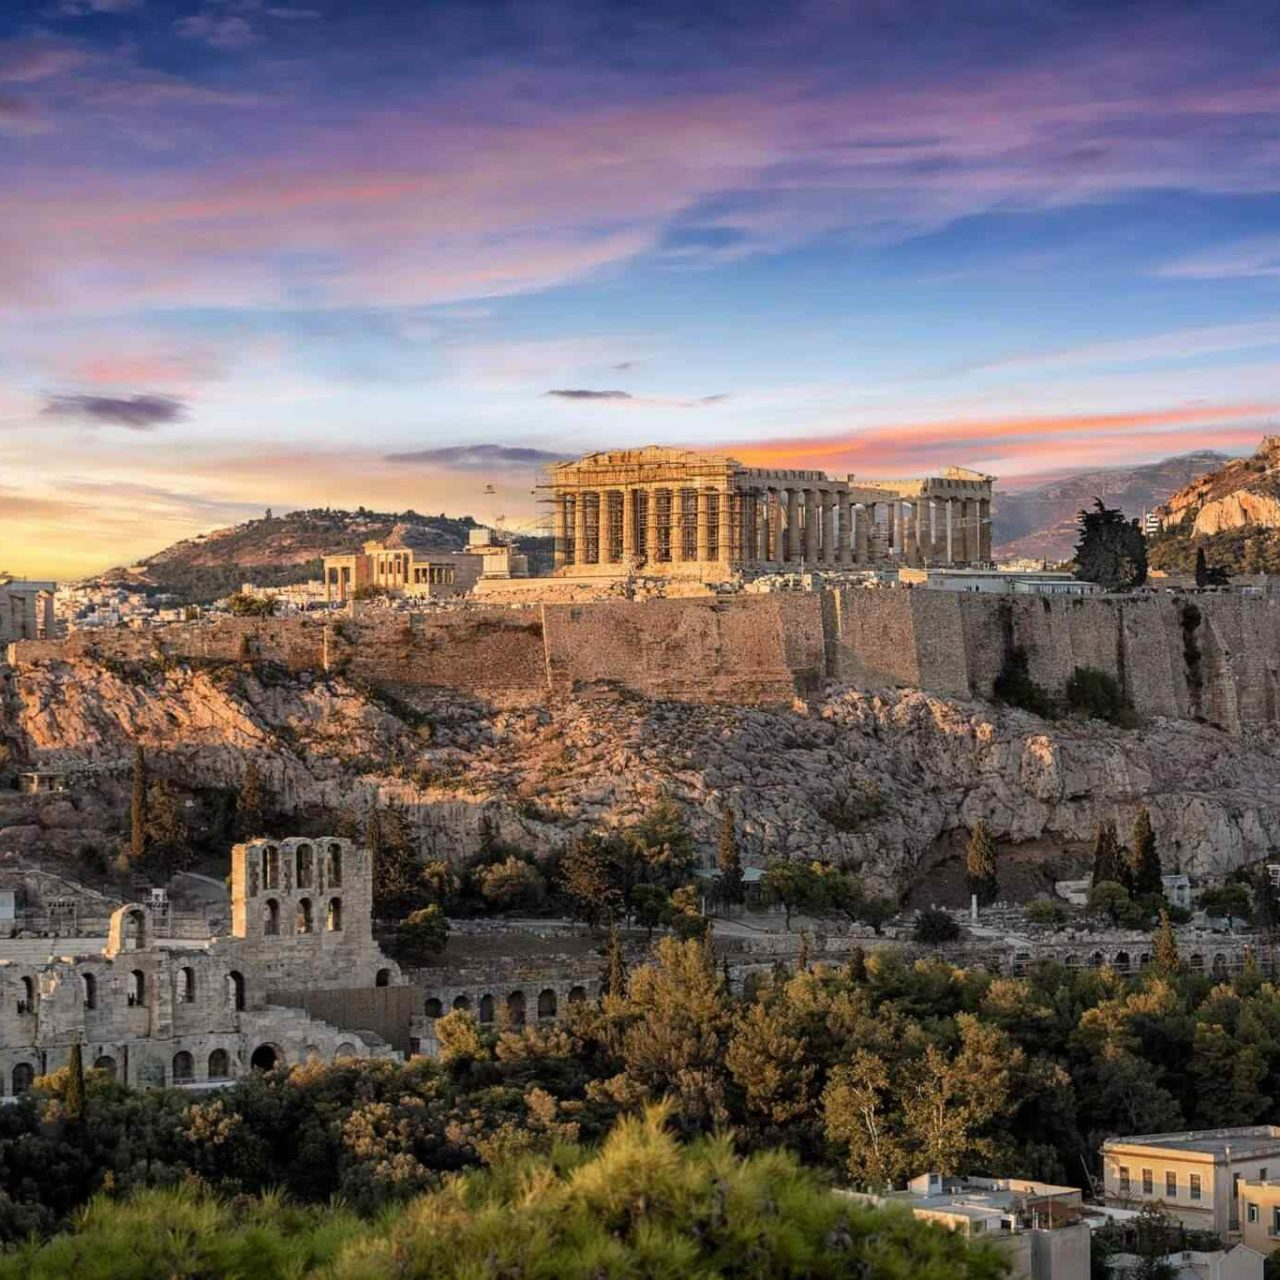 https://www.italiaholiday.it/wp-content/uploads/2018/09/destination-athens-01-1280x1280.jpg